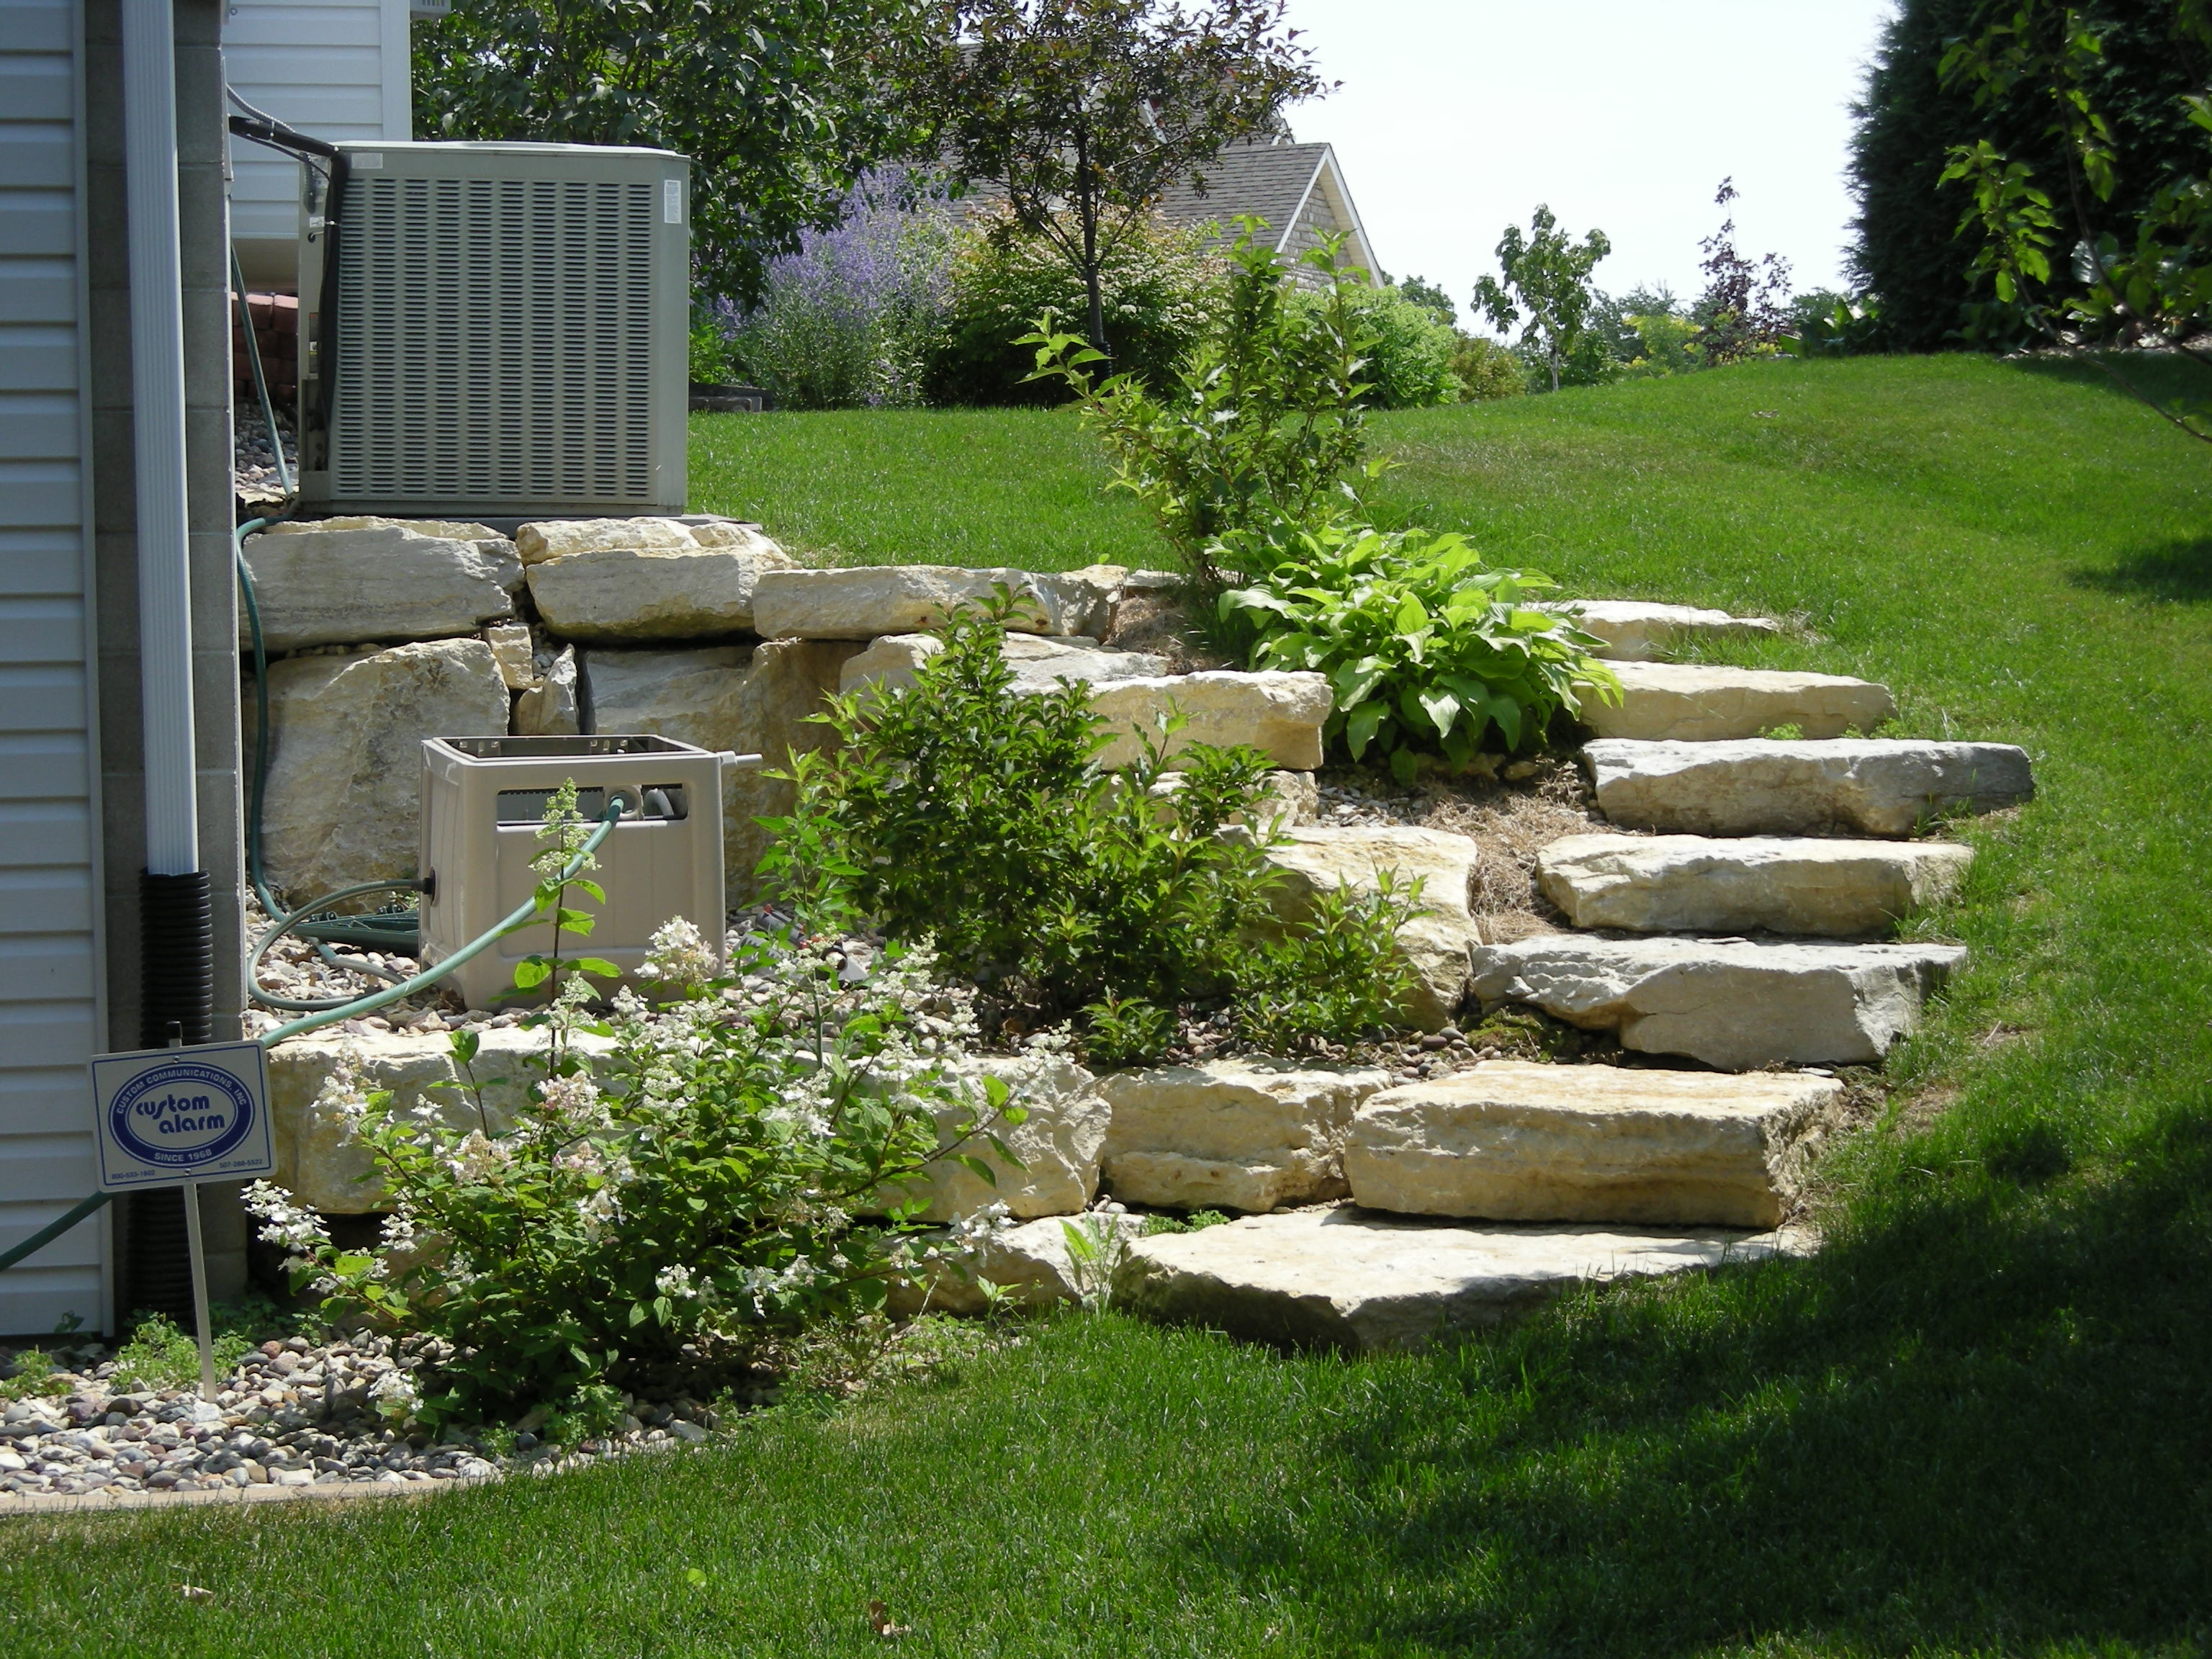 Landscape Designs for Hilly or Sloping Yards - Badger Land ... on Backyard Stairs Ideas id=85120